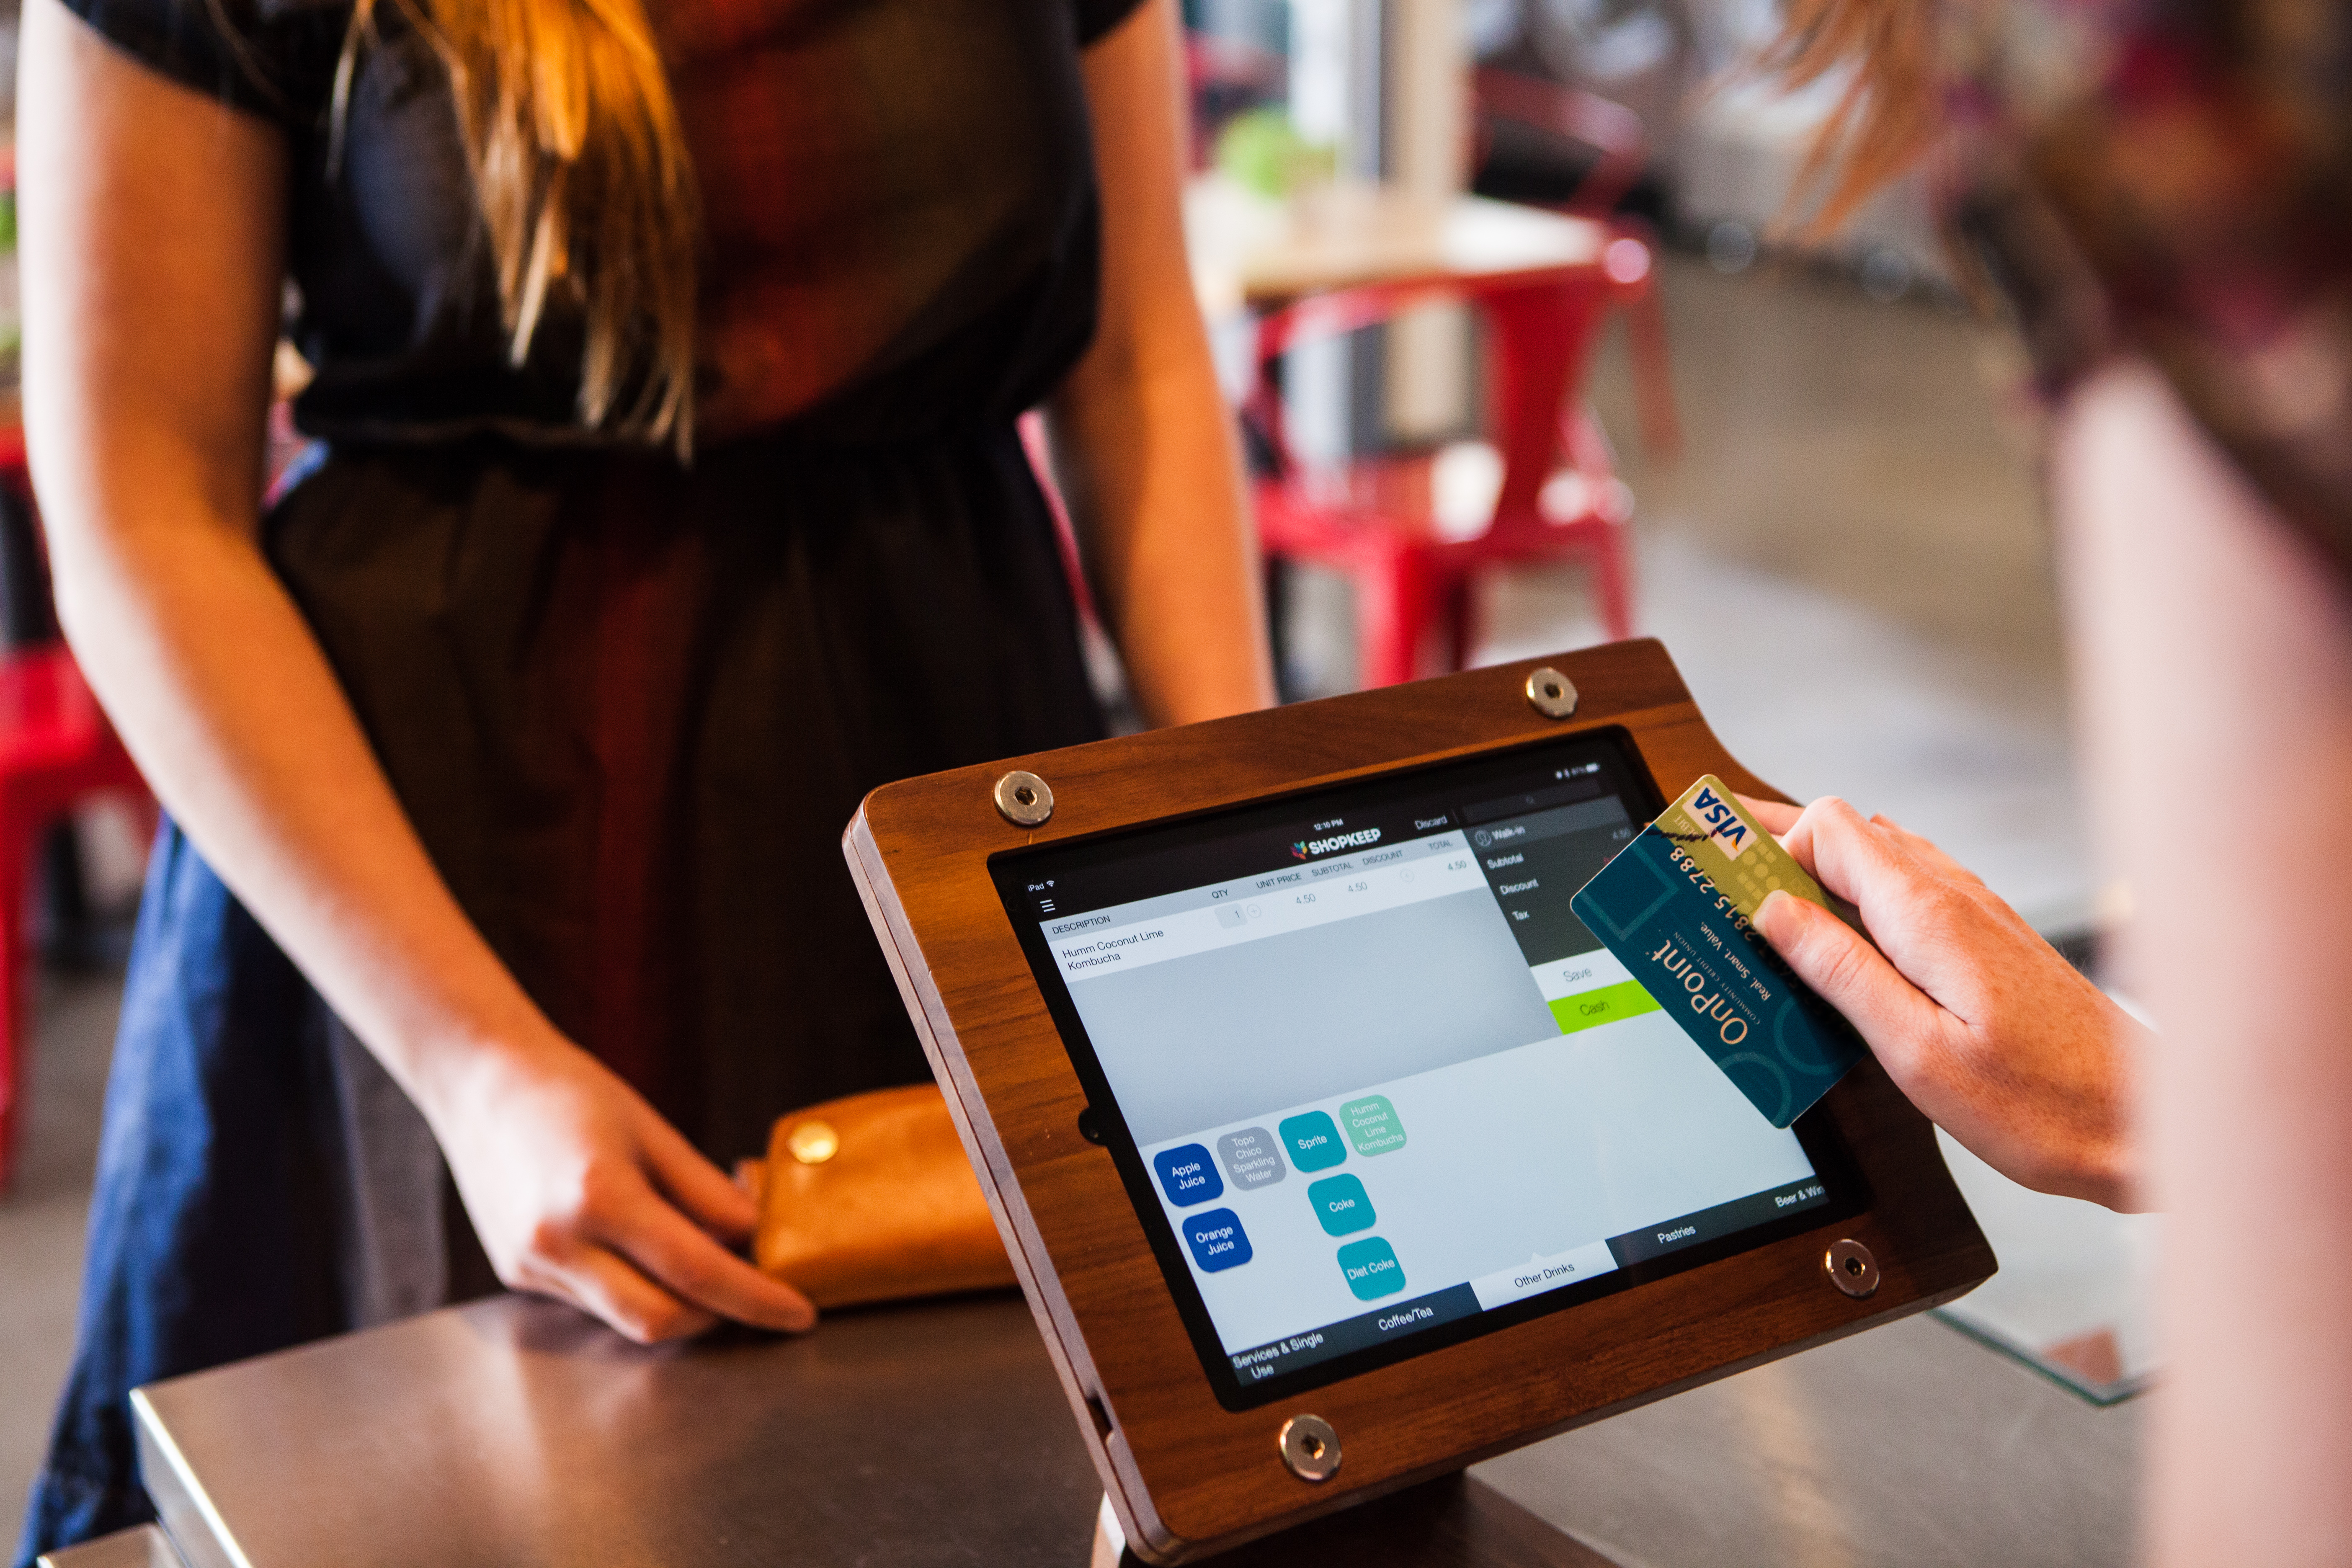 7 Reasons Why the iPad is Your Small Business Swiss Army Knife – by ShopKeep